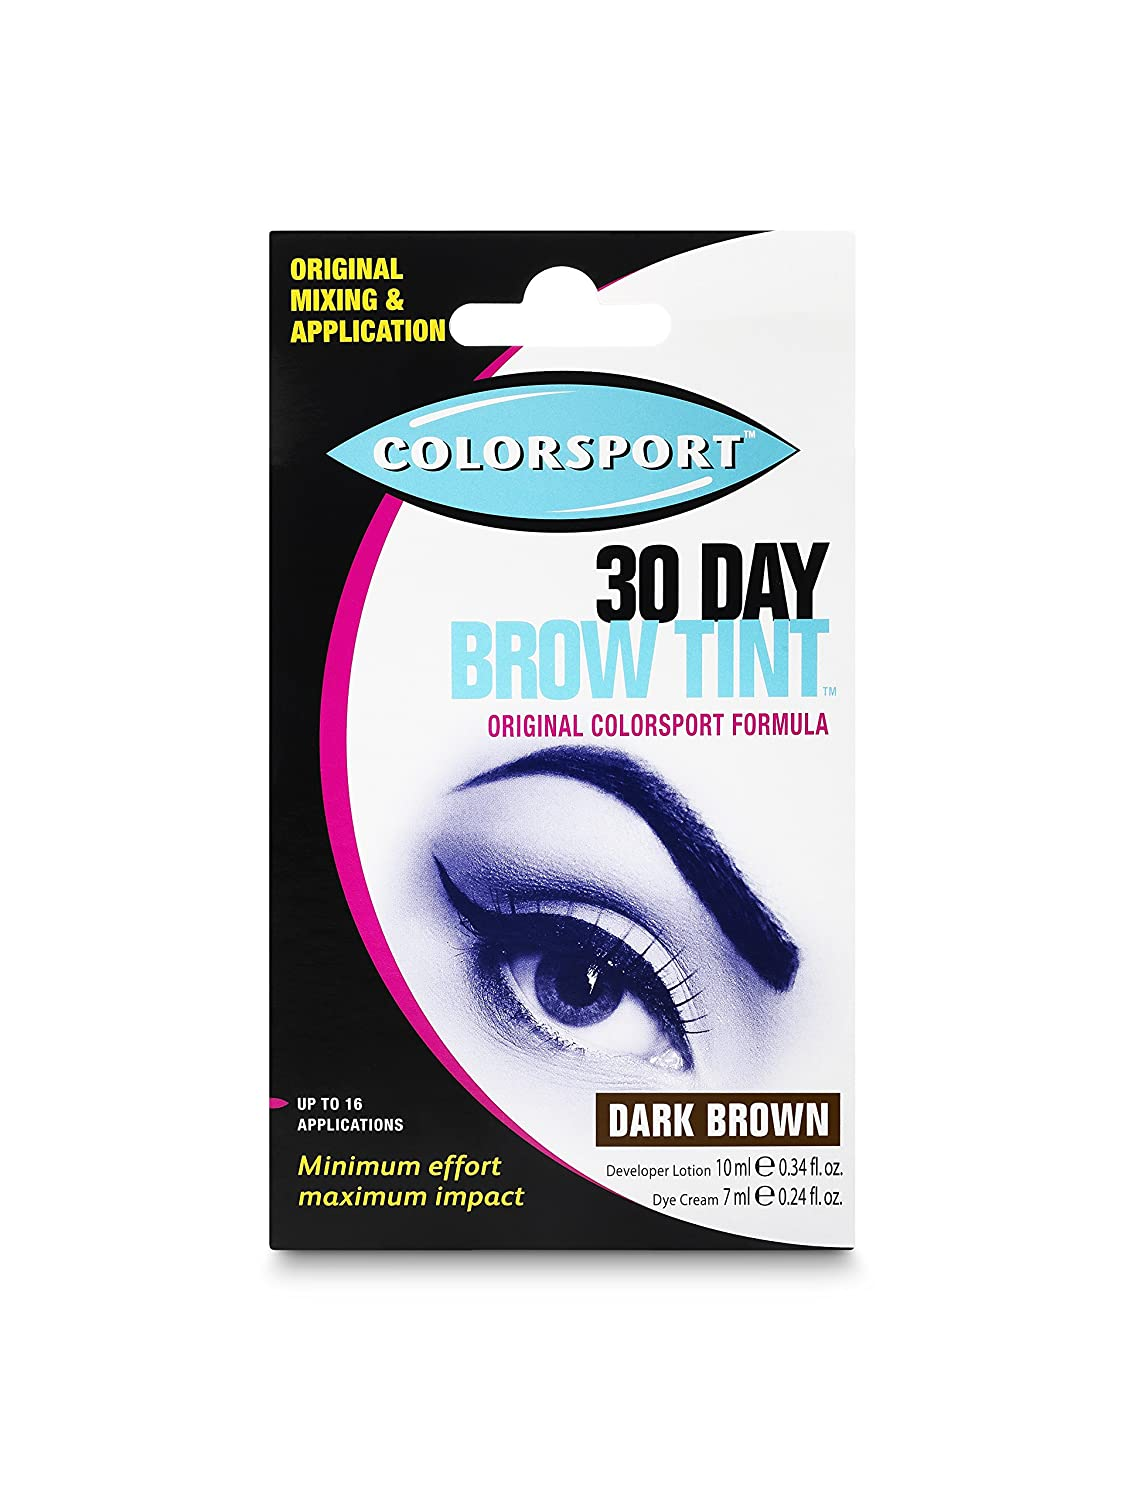 Colorsport 30 Day Brow Tint, Dark Brown 05081COL